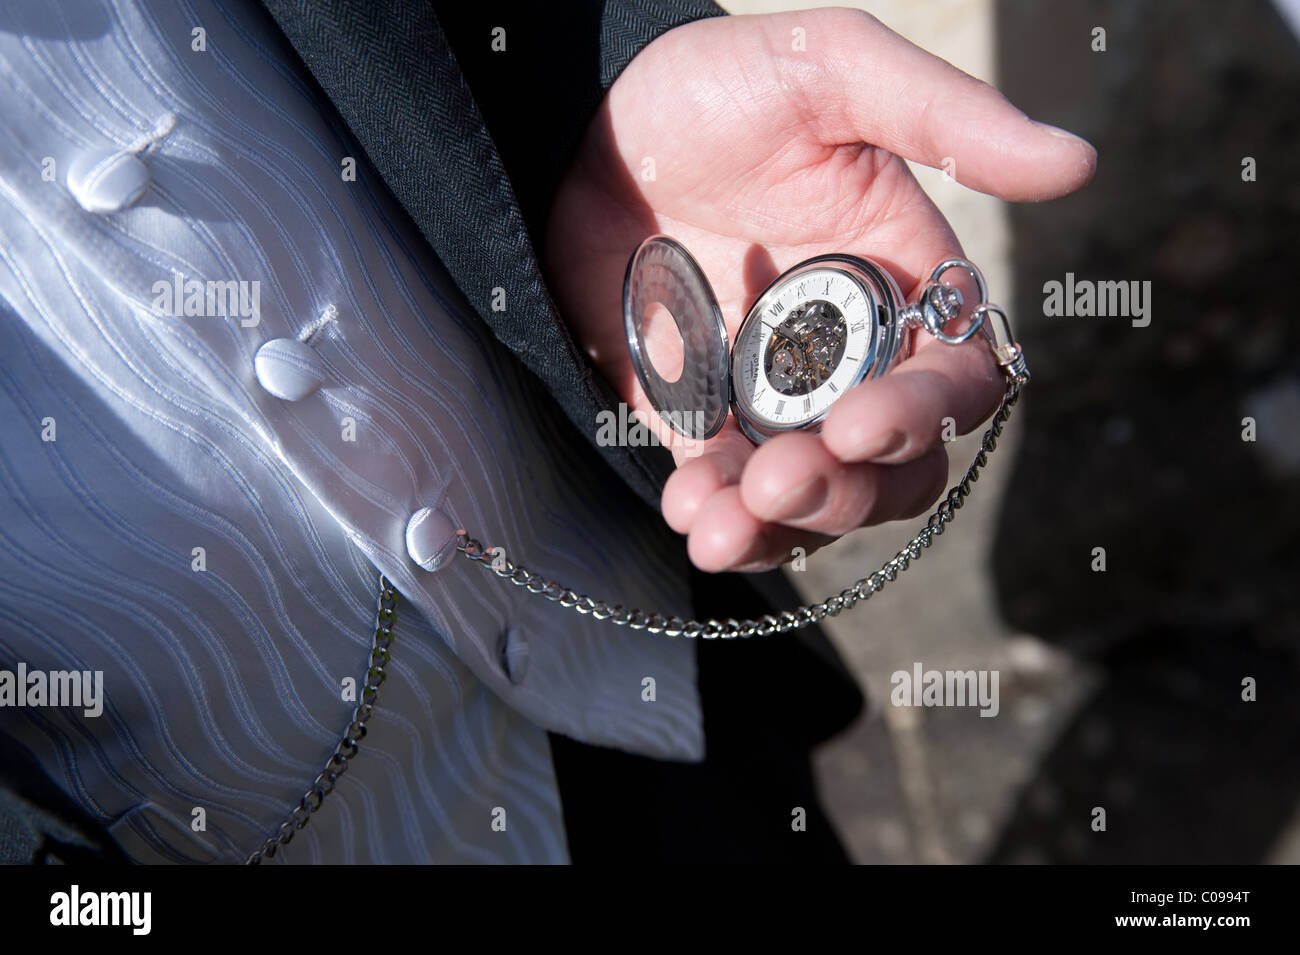 http://c8.alamy.com/comp/C0994T/a-mans-hand-holding-a-pocket-watch-attached-by-a-chain-to-his-waistcoat-C0994T.jpg